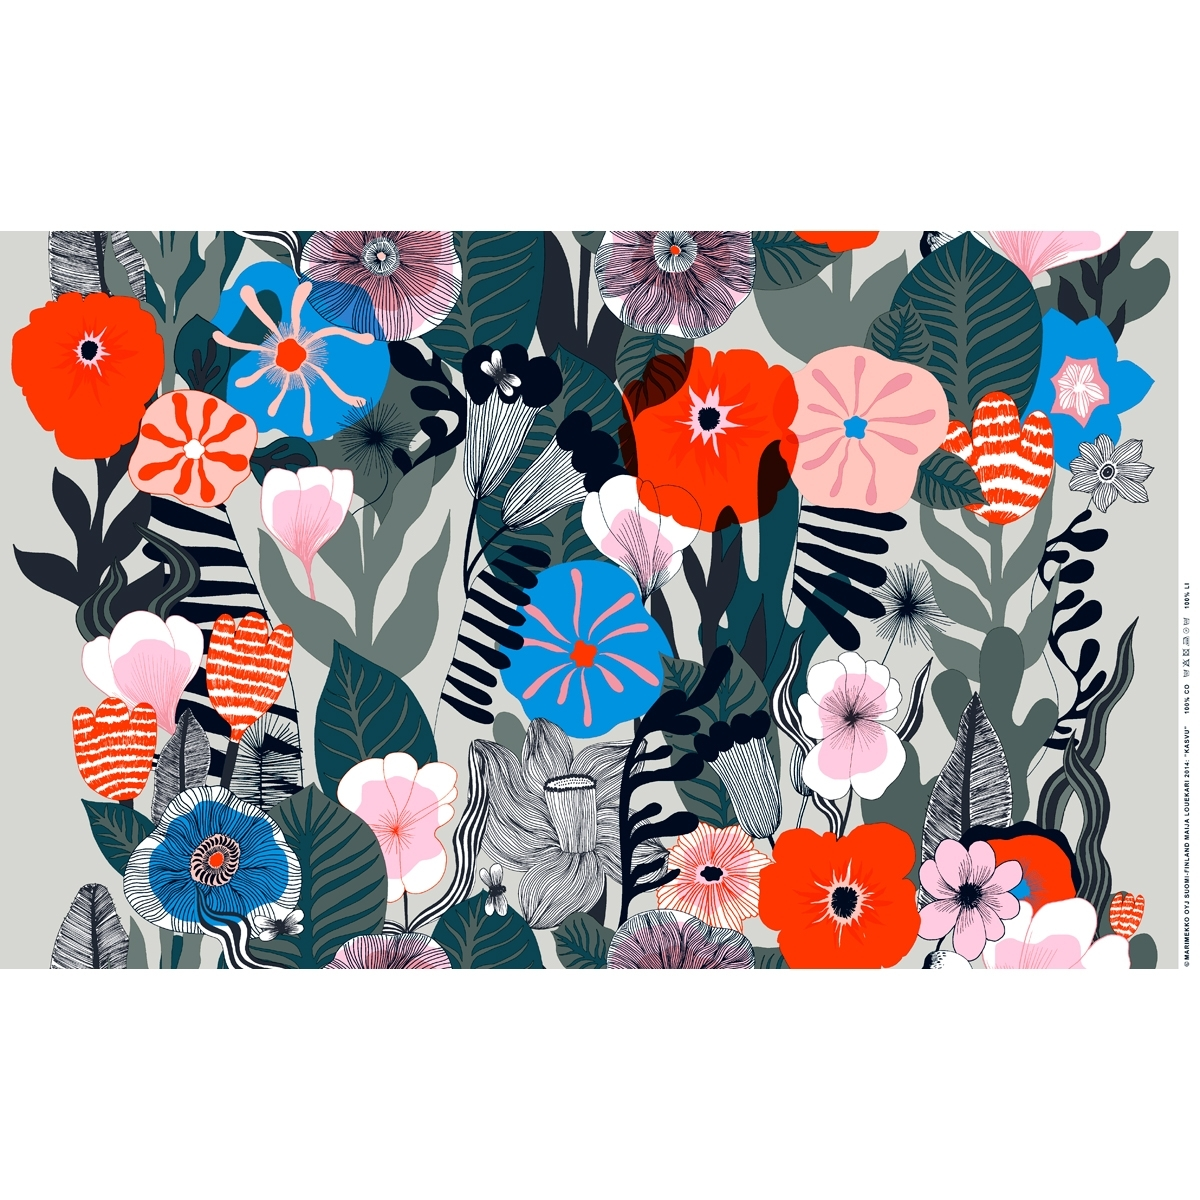 Marimekko Kasvu Grey Pvc Fabric 35 1,200×1,200 Pixels | Home Throughout Recent Marimekko 'kevatjuhla' Fabric Wall Art (Gallery 13 of 15)